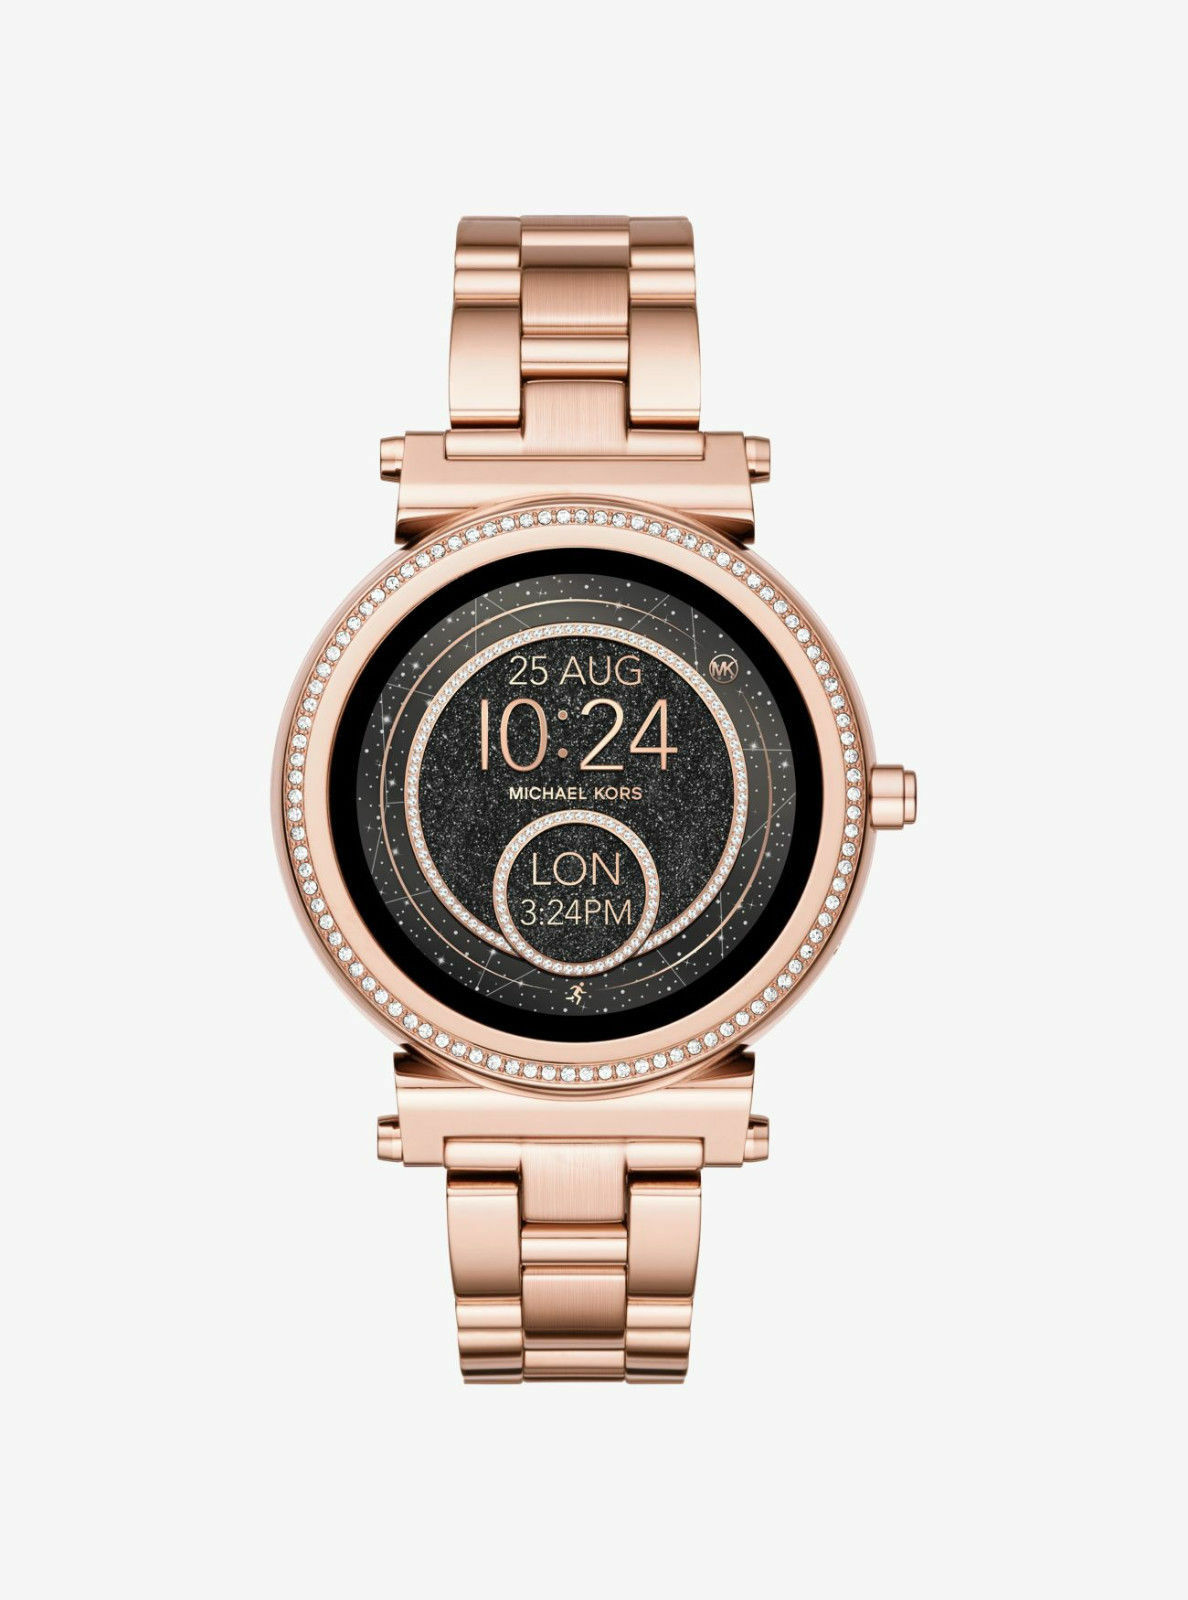 1abcea2def4d Display Michael Kors Access Unisex Sofie Rose Gold Plated Smart Watch  MKT5022